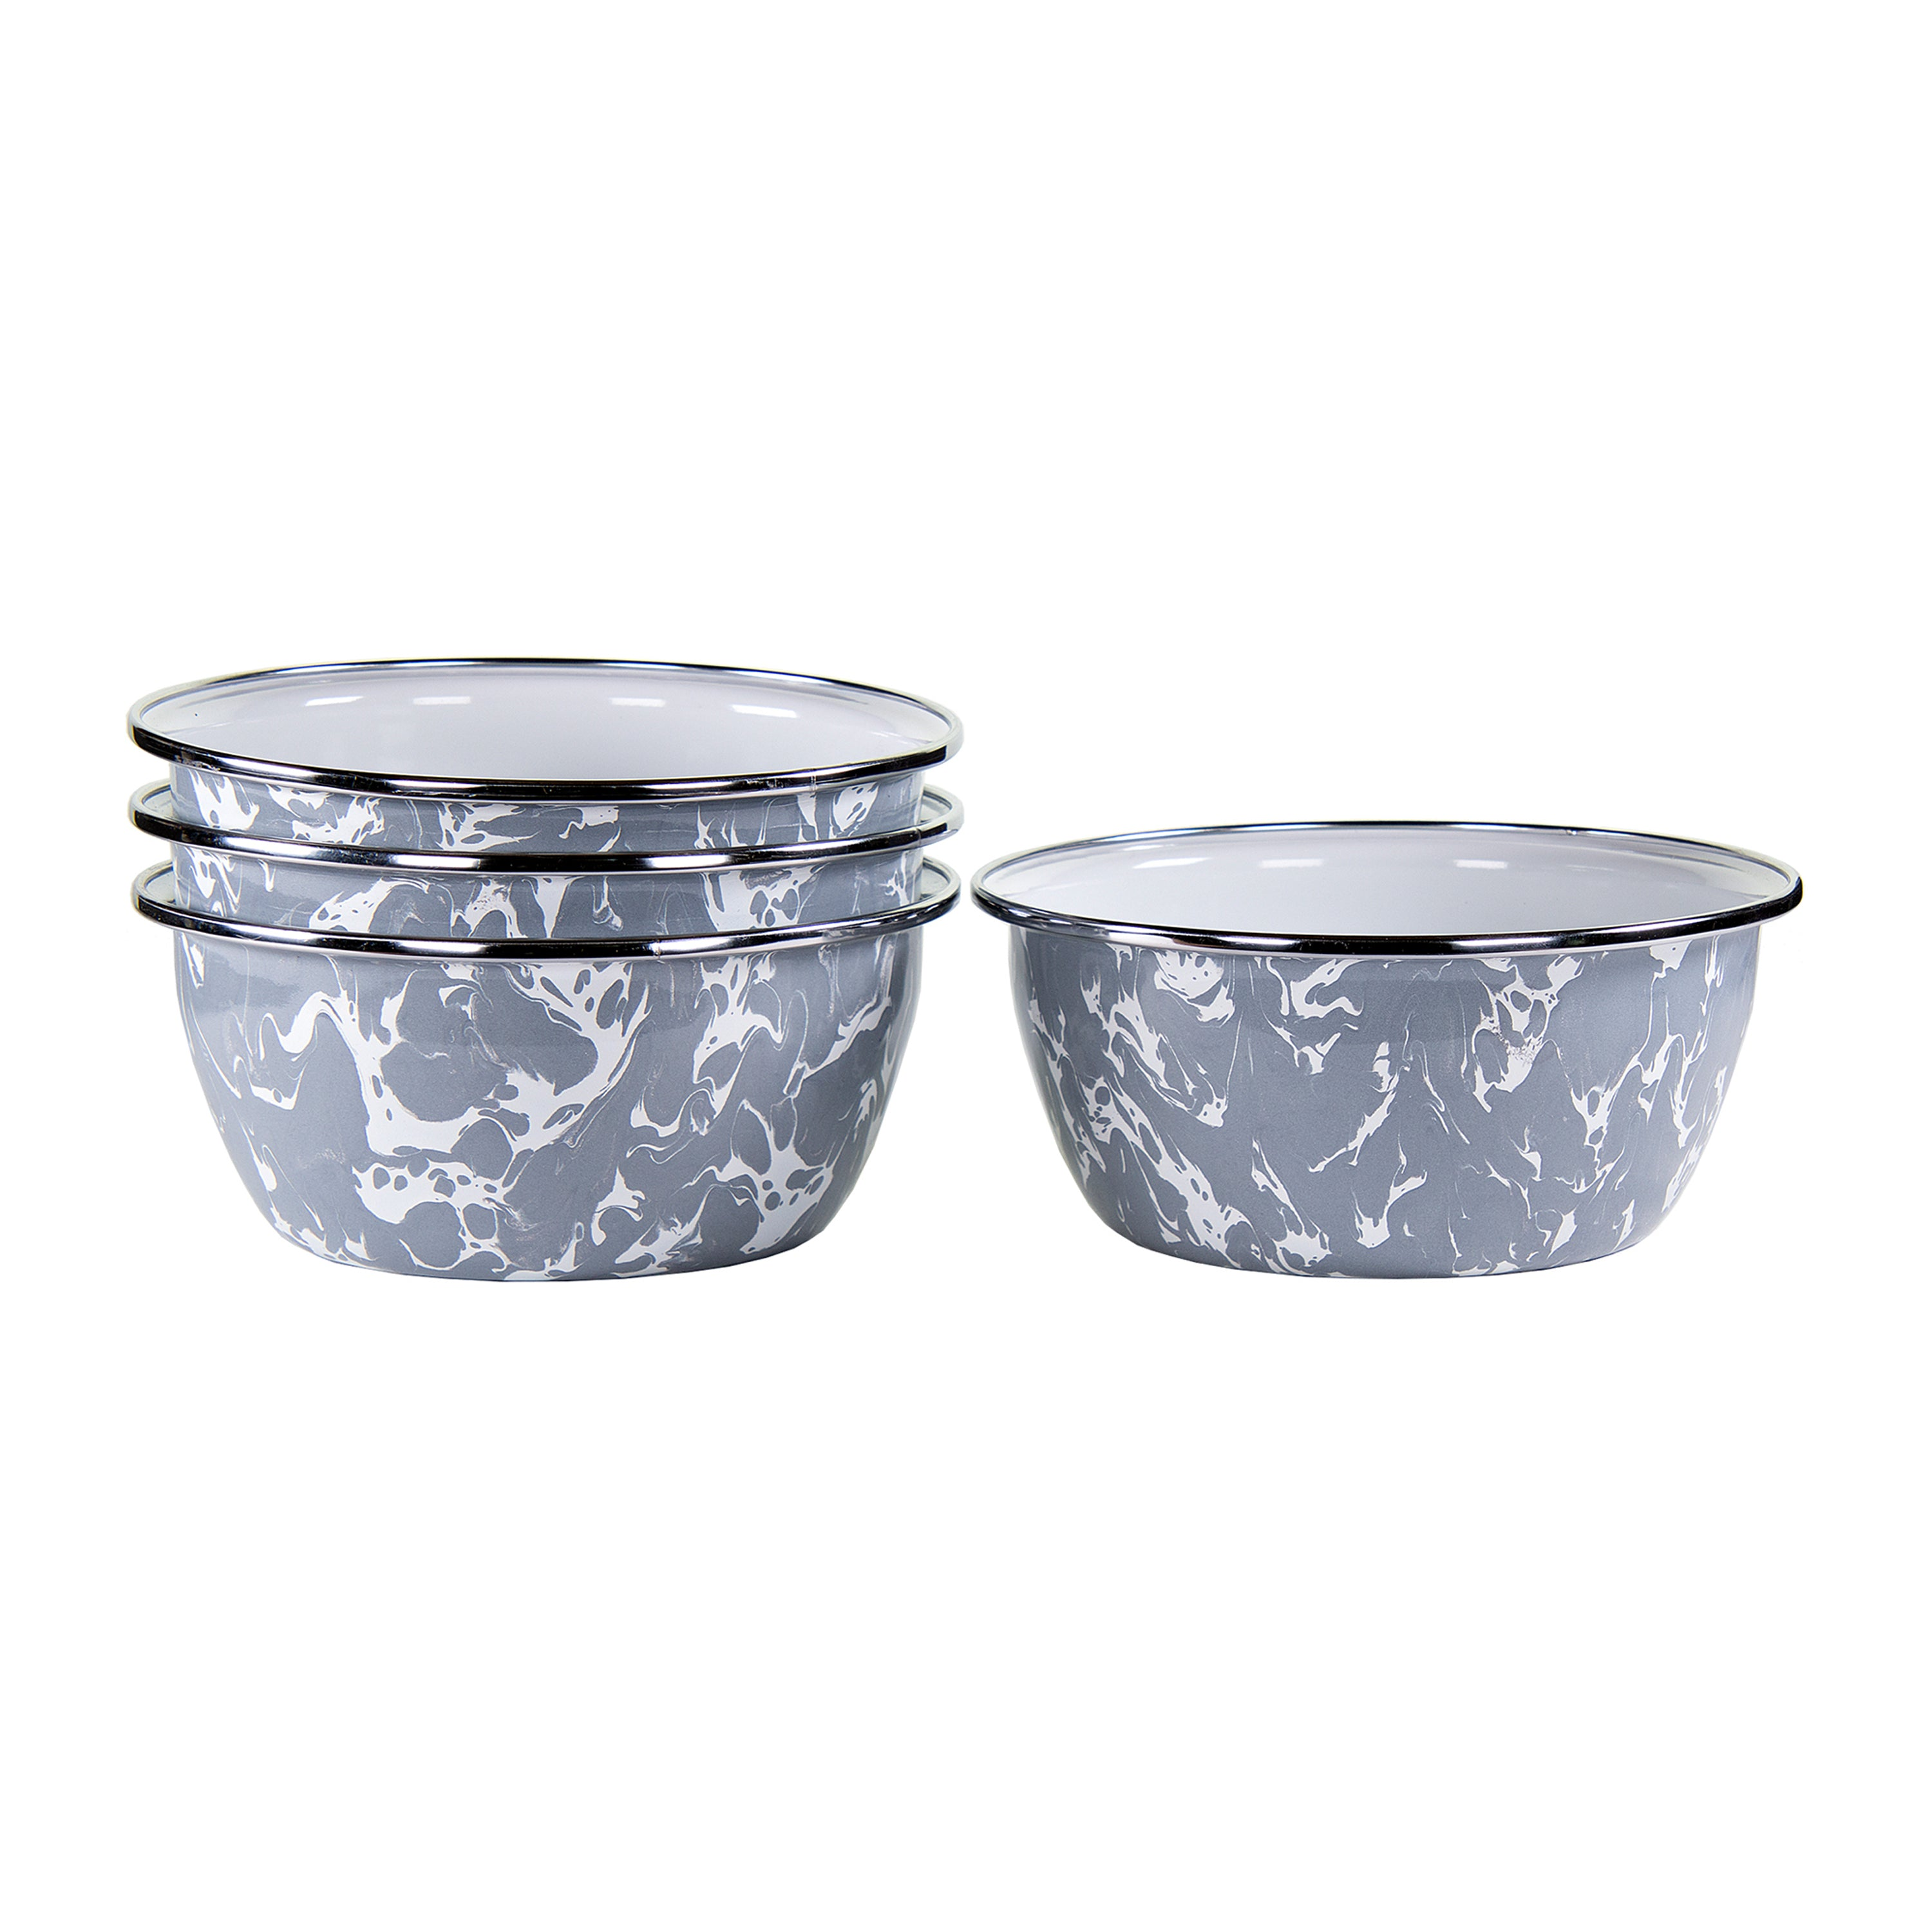 GY61S4 - Set of 4 Grey Swirl Salad Bowls Image 1